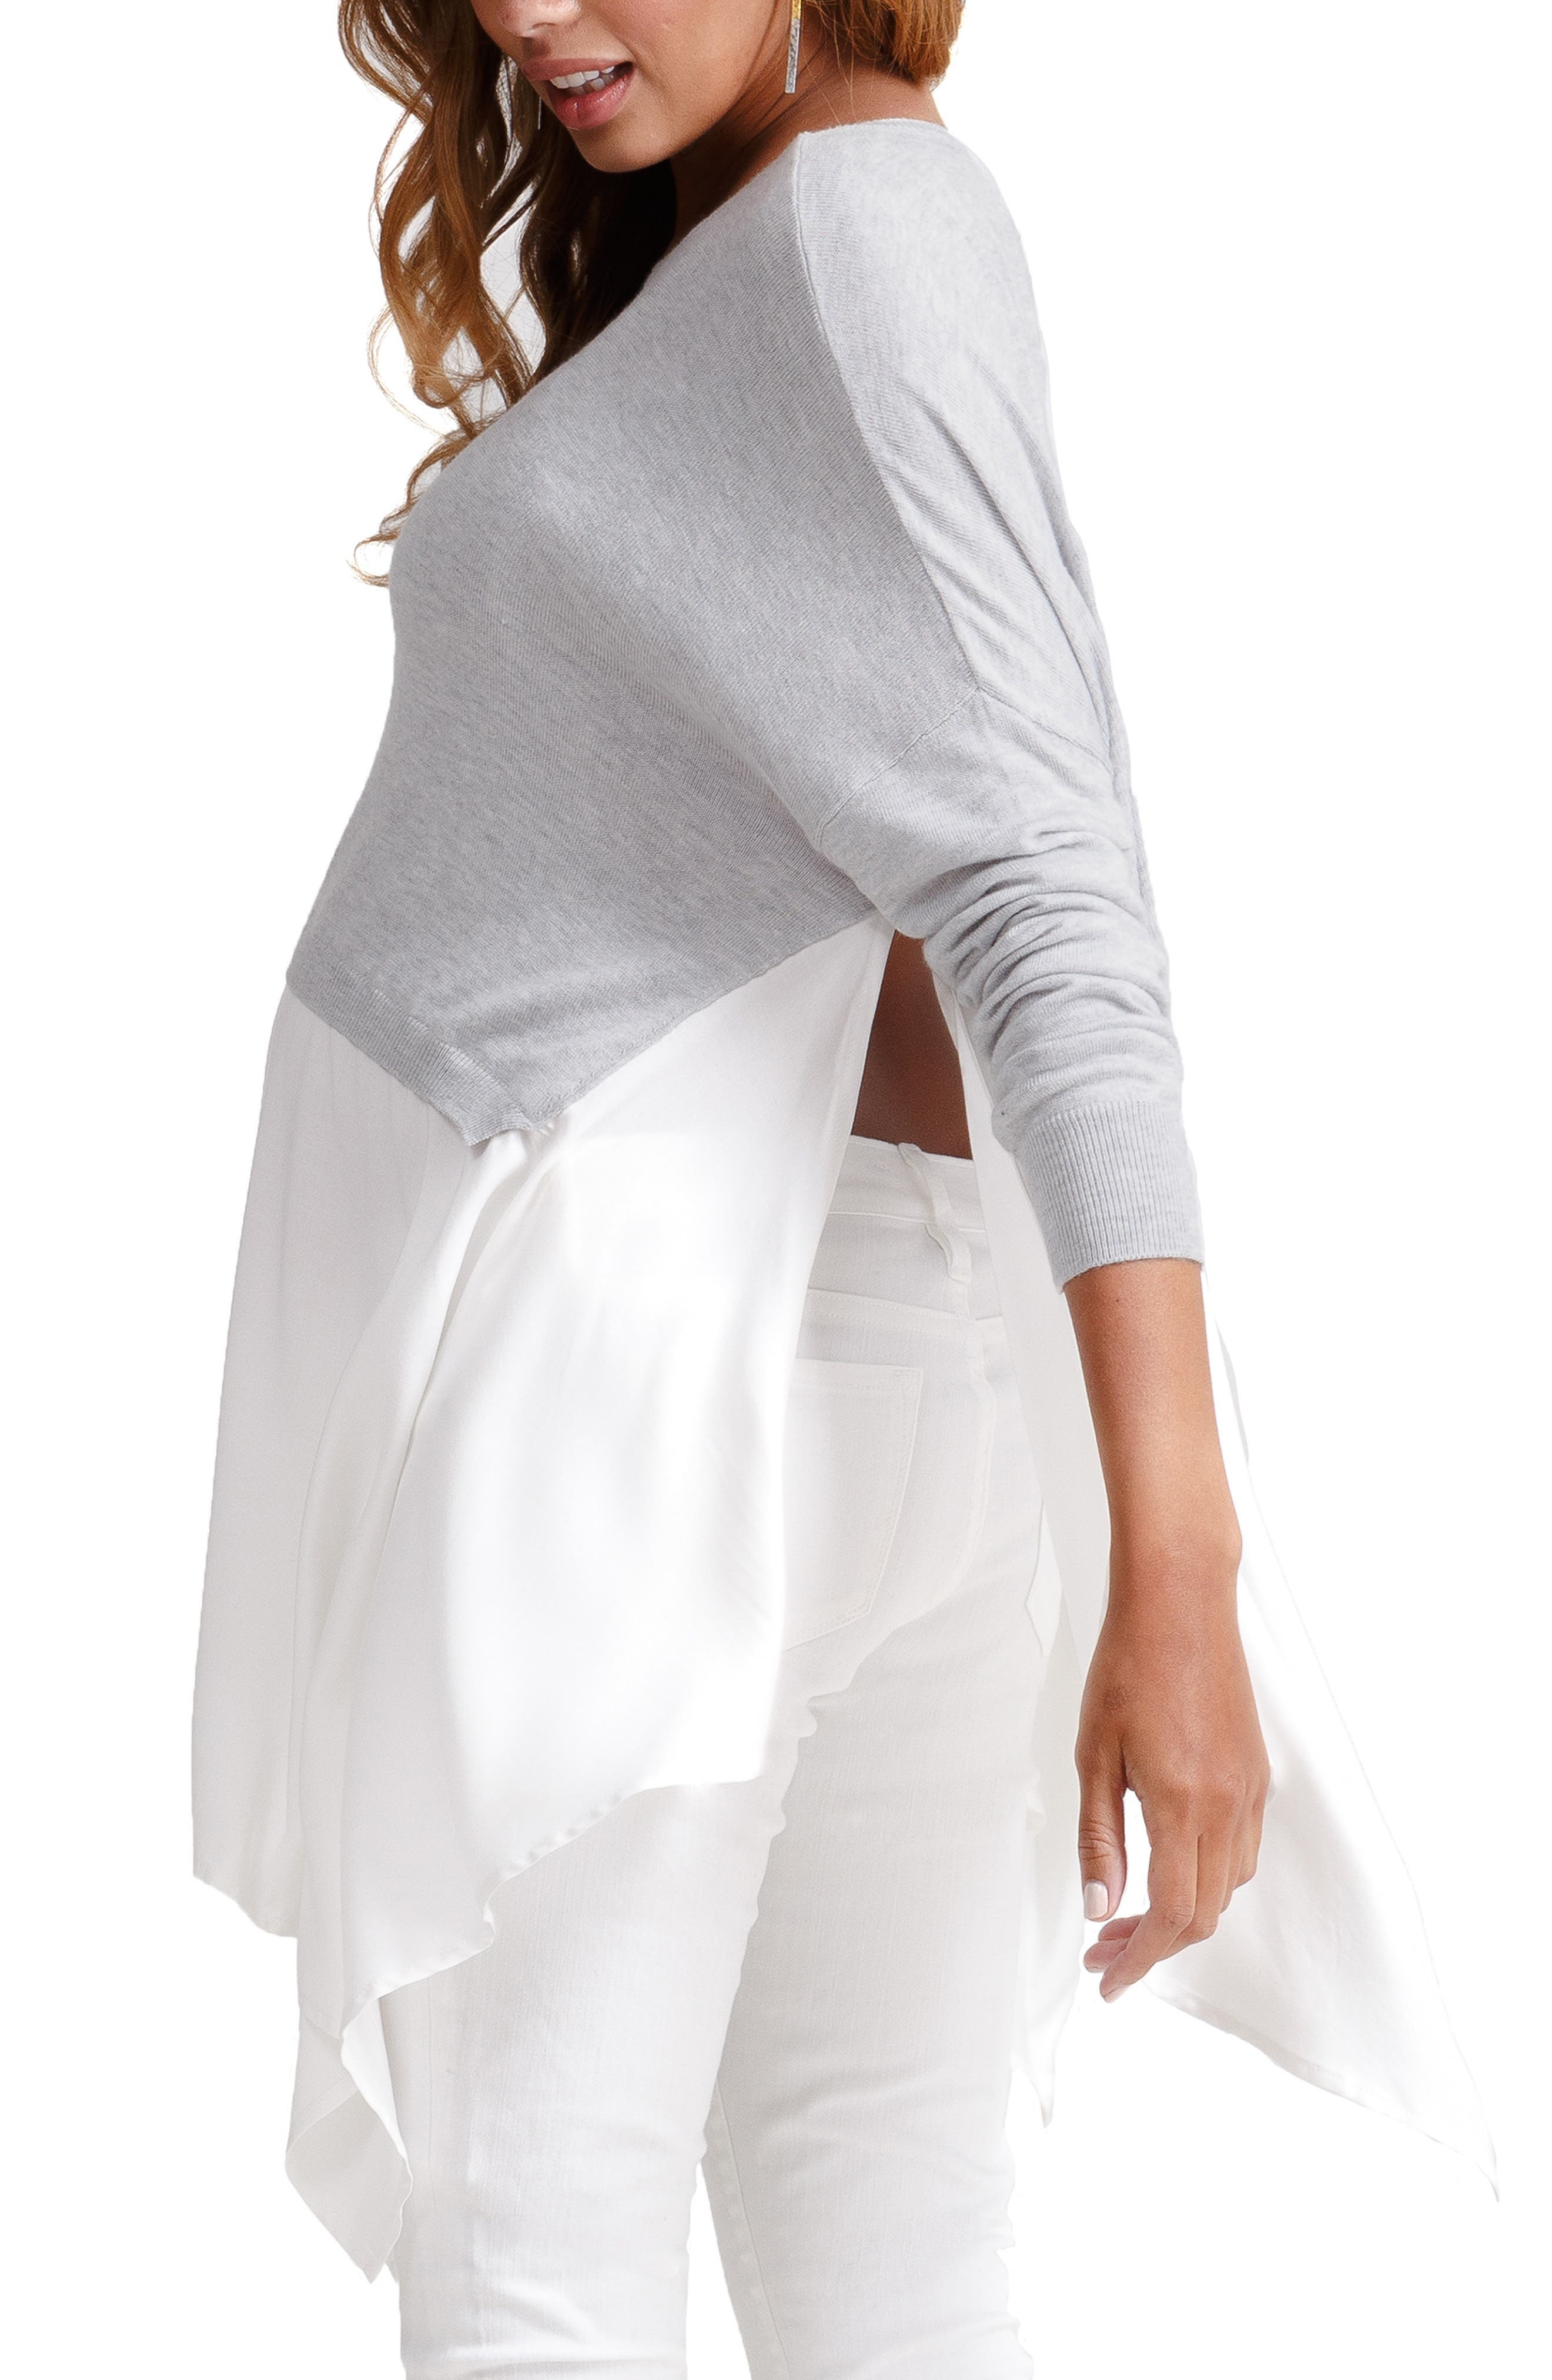 Drapey Swing Mixed Media Maternity/Nursing Sweater,                             Alternate thumbnail 3, color,                             LIGHT HEATHER GRAY WITH IVORY